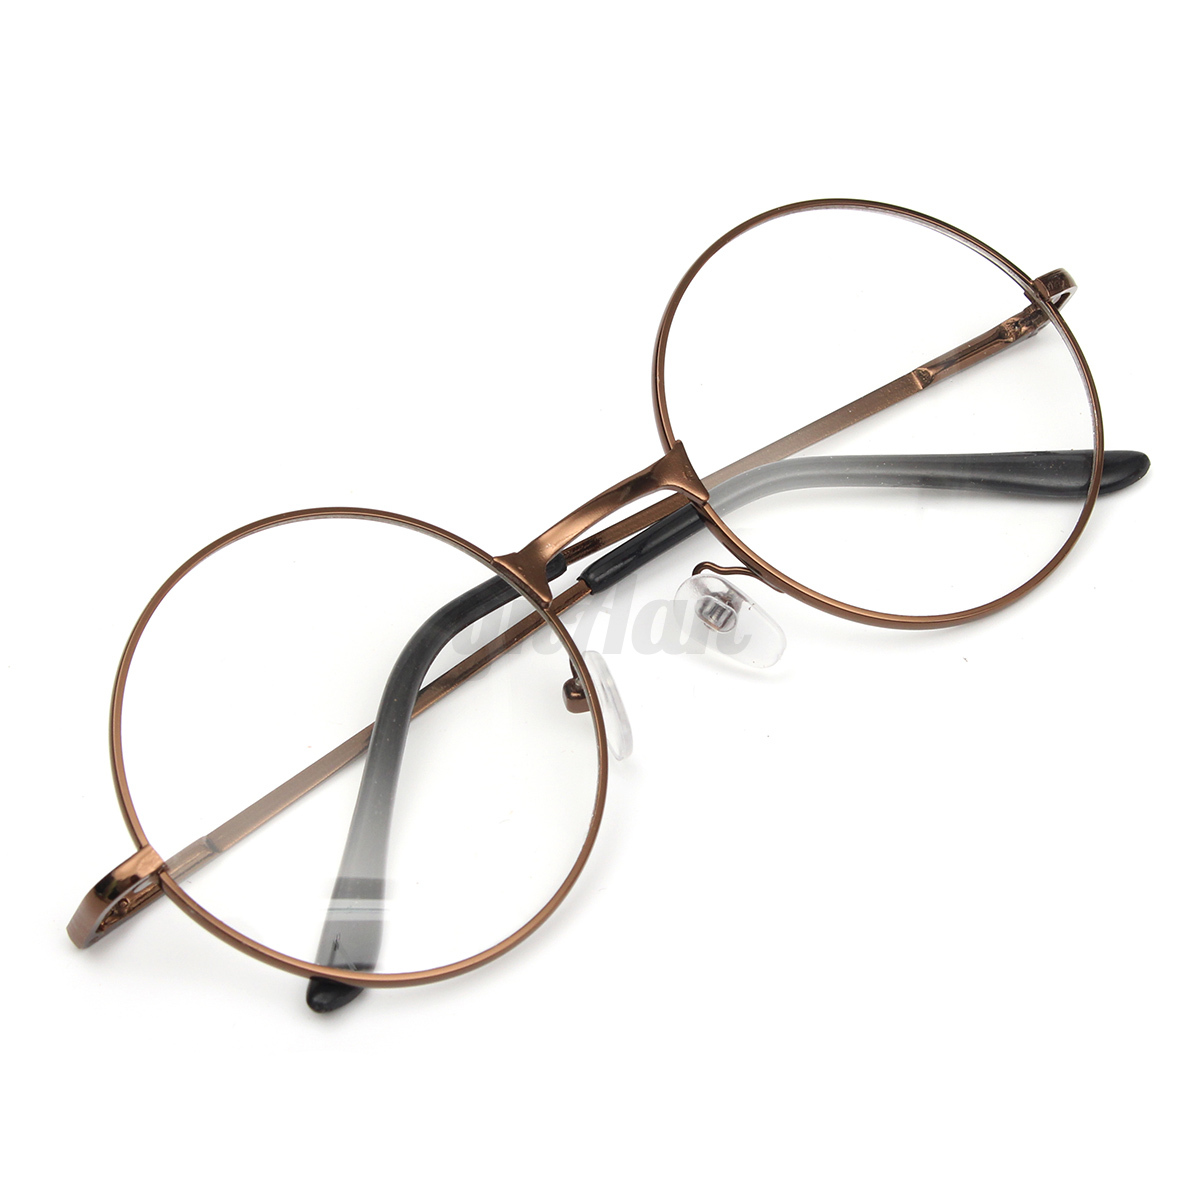 Guess Glasses Frame Parts : Metal Vintage Men Women Clear Lens Eyeglasses Retro Round ...